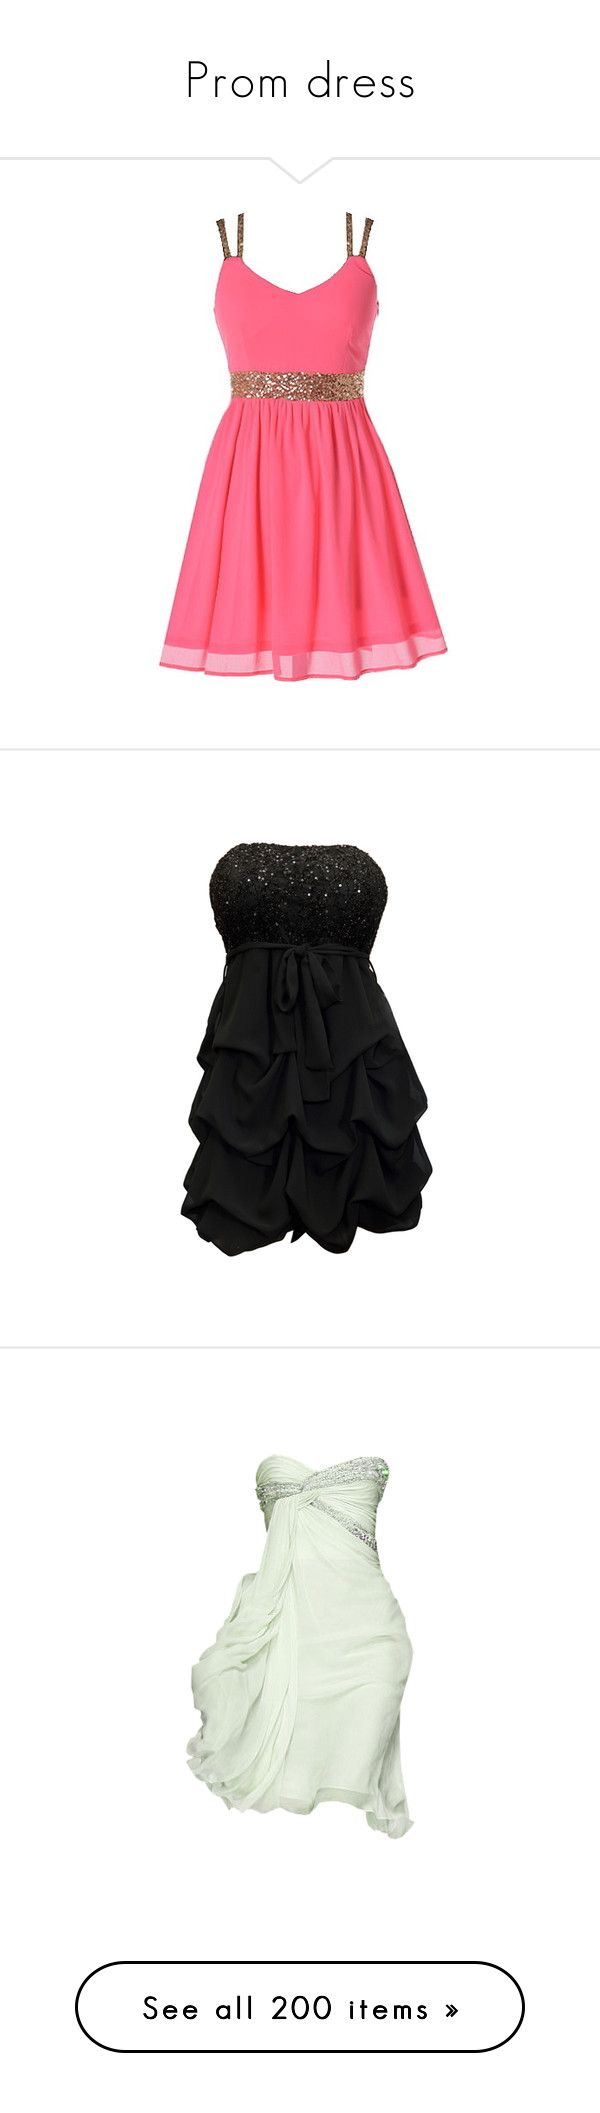 """Prom dress"" by roplama ❤ liked on Polyvore featuring dresses, vestidos, short dresses, pink, short sequin dress, pink sparkly dress, short sequin cocktail dresses, pink dress, robe and plus size short cocktail dresses"